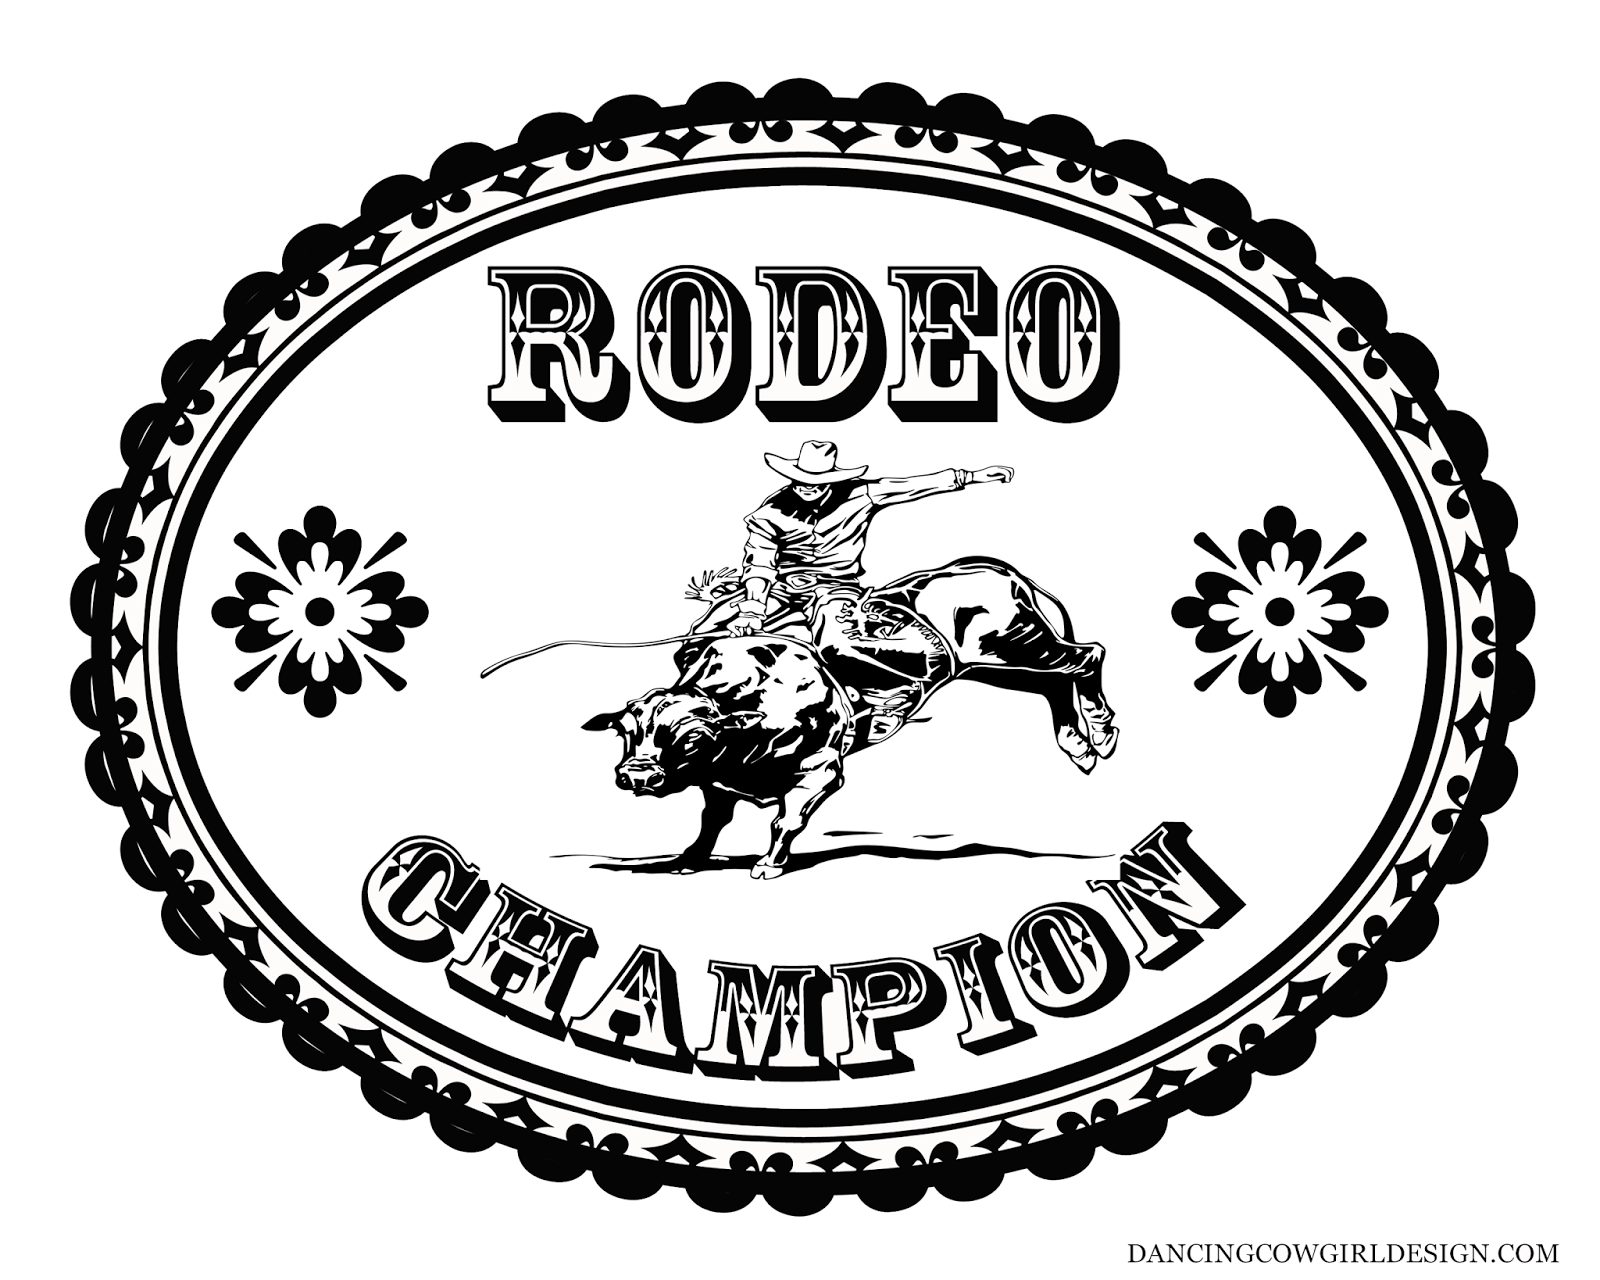 RODEO COLORING PAGES: Coloring Sheet Cowboy Rodeo Bull Rider Belt Buckle